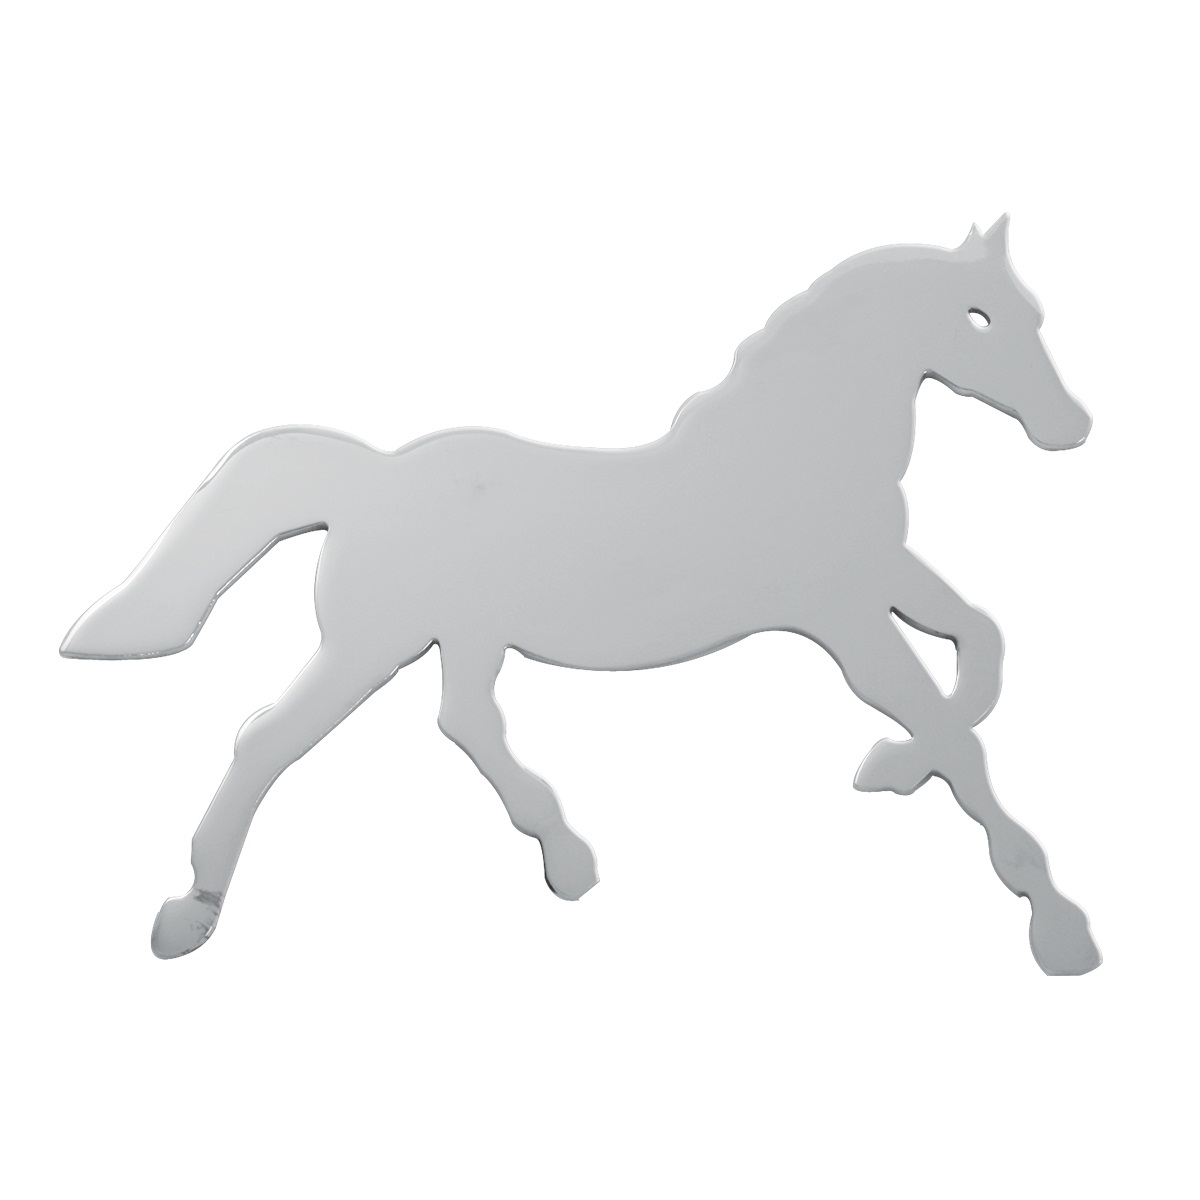 Small Horse Cut Out Facing Right – Studs on Back